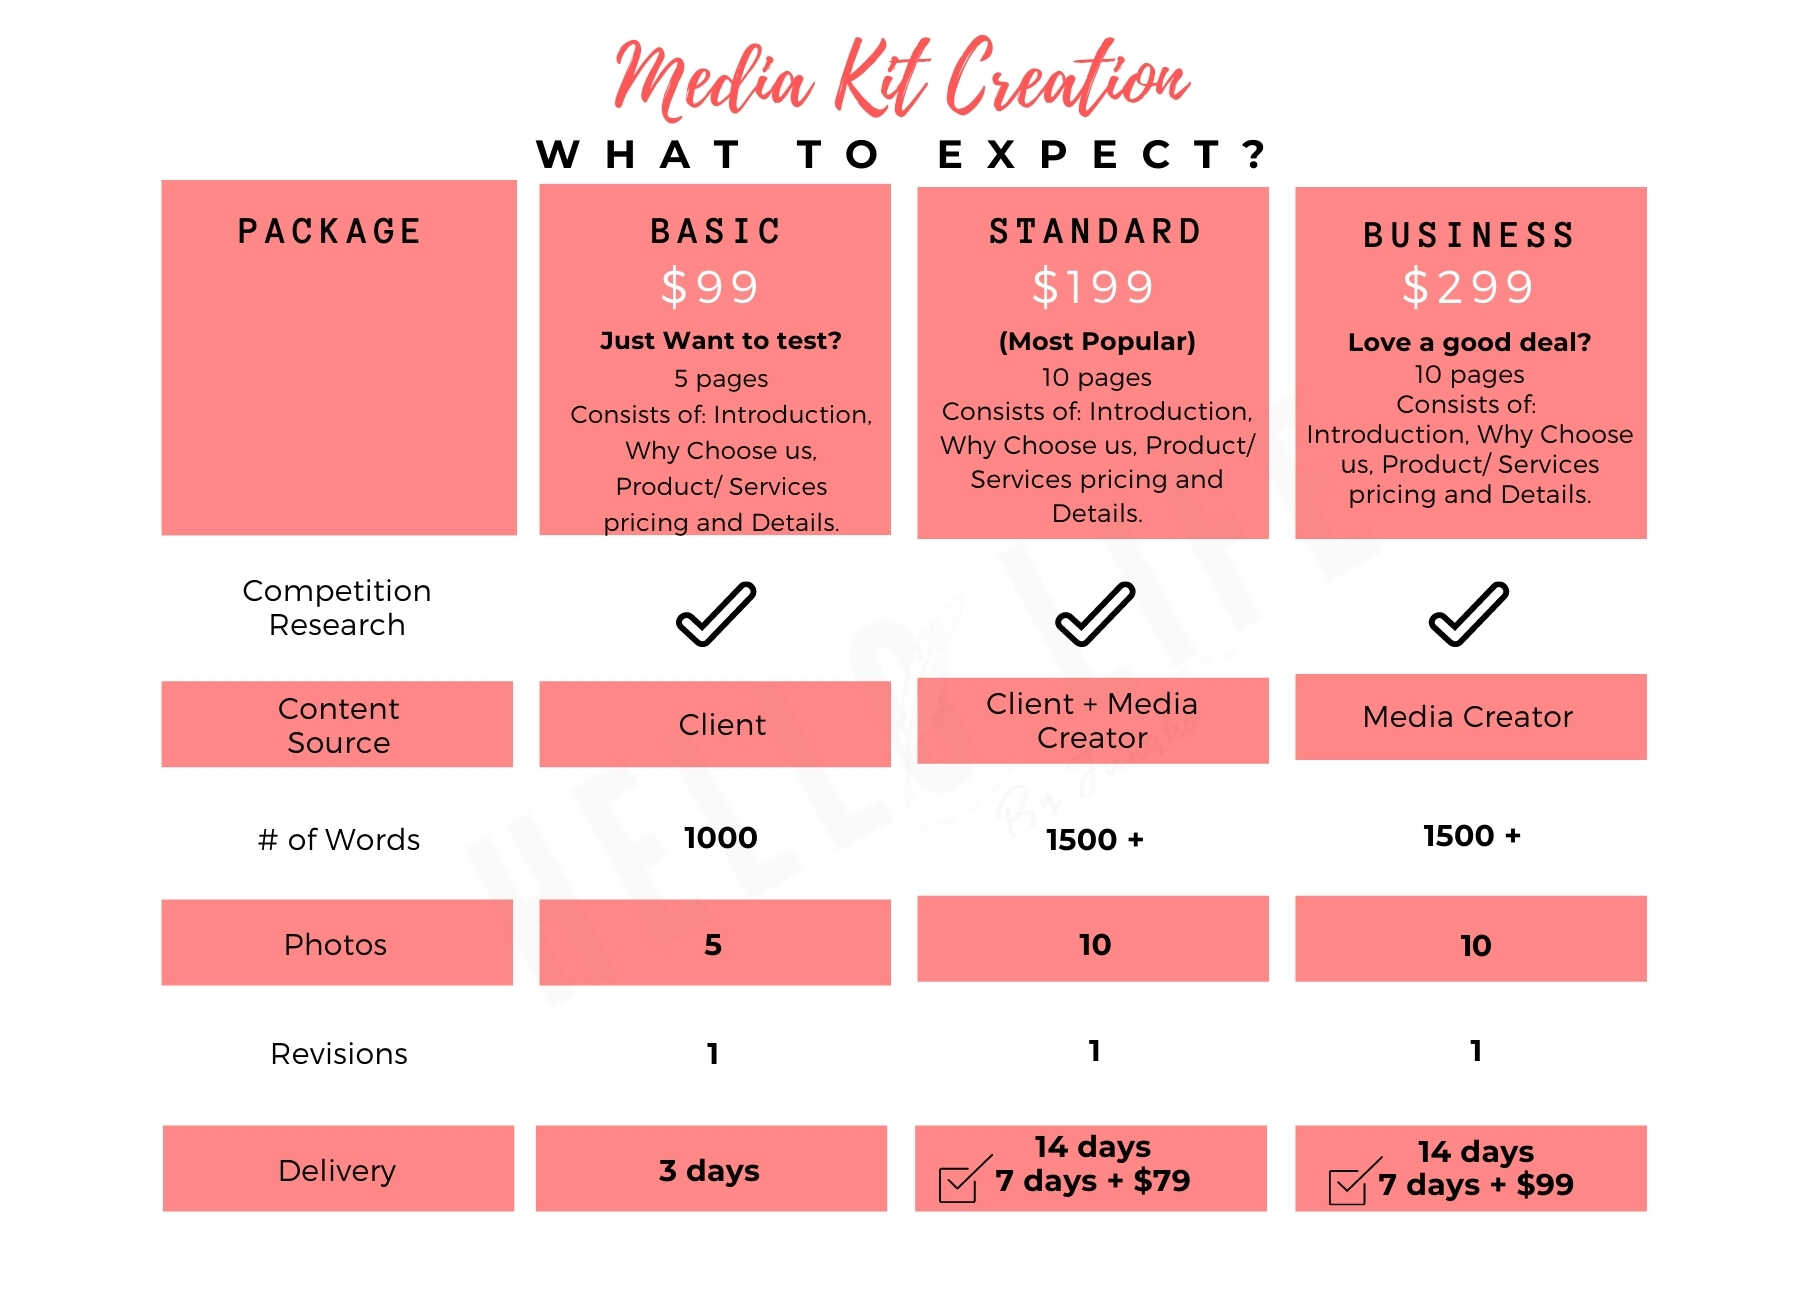 Services offered by Hello Life Media Kit Creation